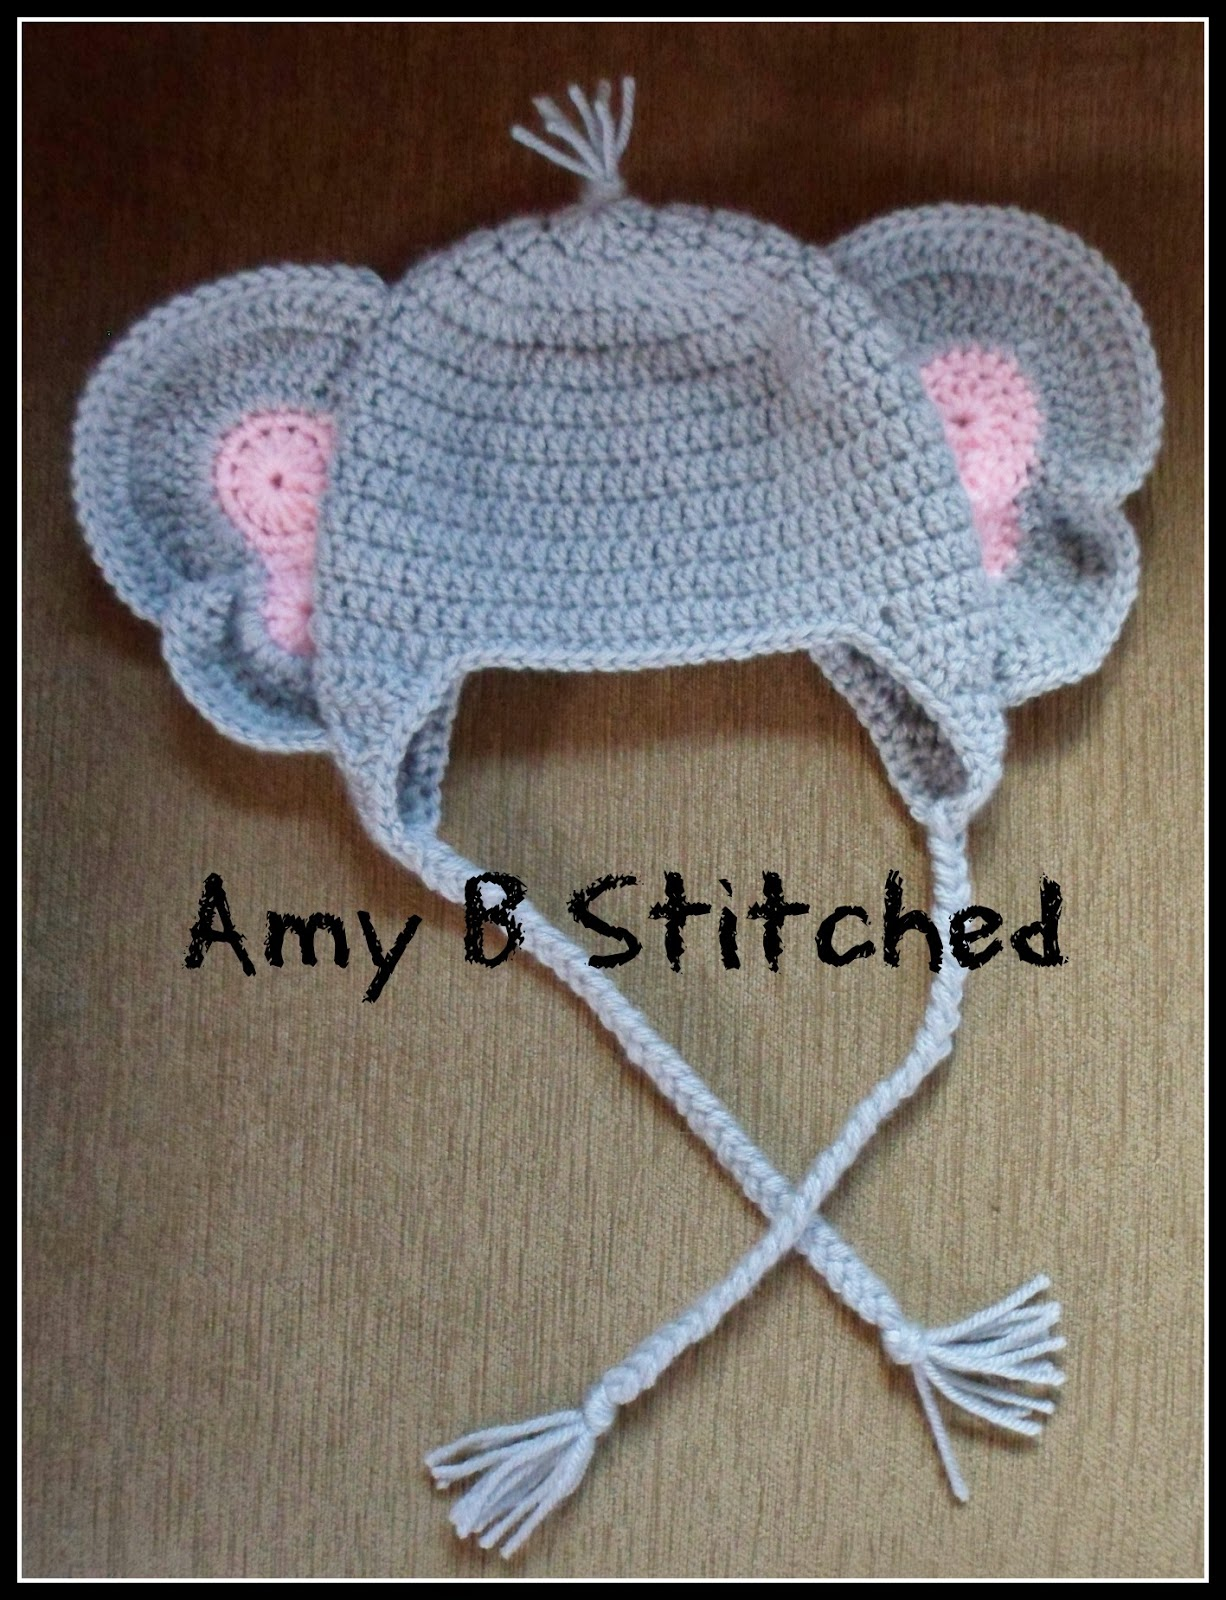 A Stitch At A Time for Amy B Stitched: Newborn Angel Wings and ...